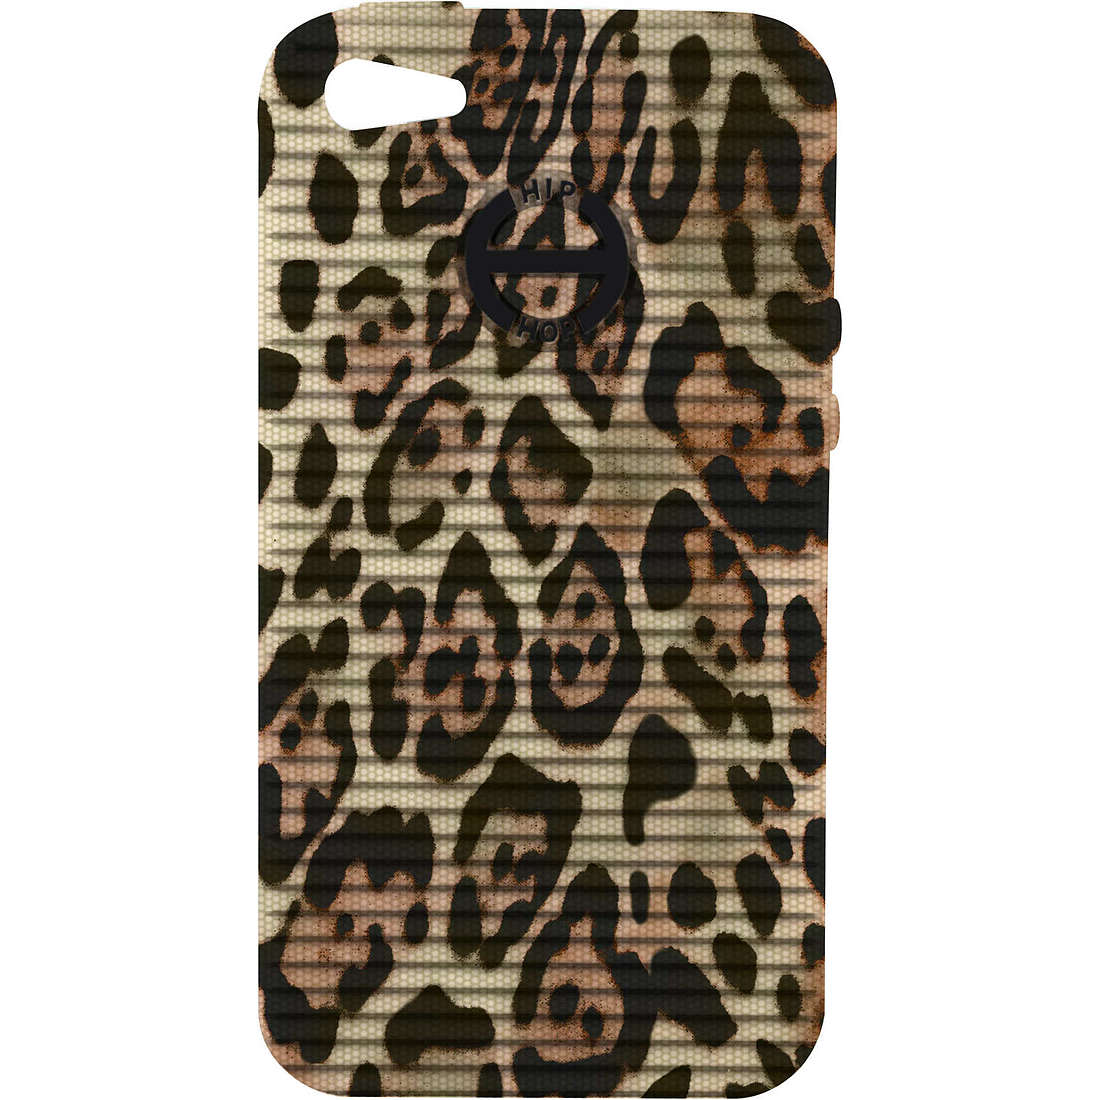 accessorio unisex gioielli Hip Hop Animalier HCV0063